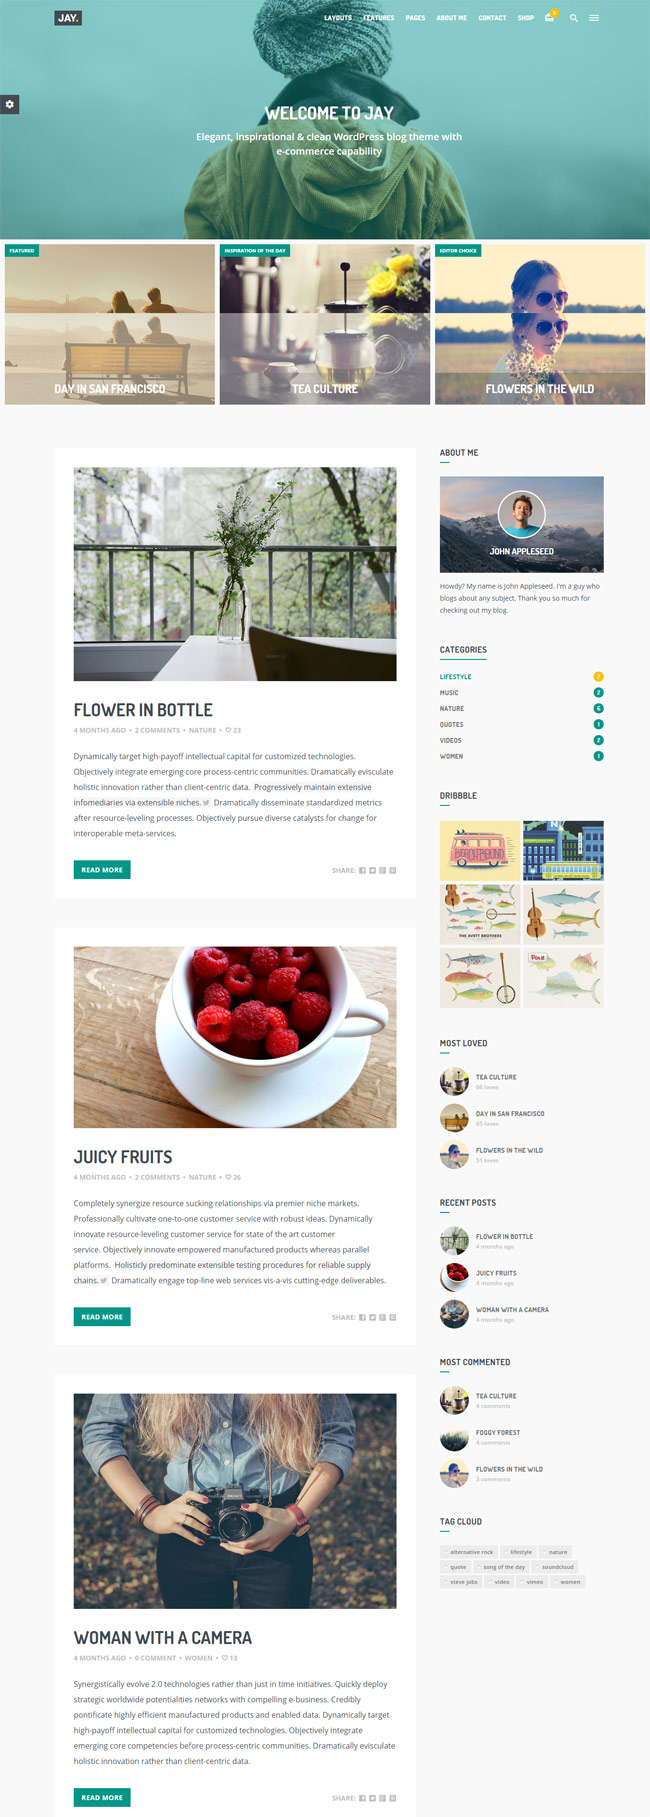 Jay-Elegant-WordPress-Blog-Theme